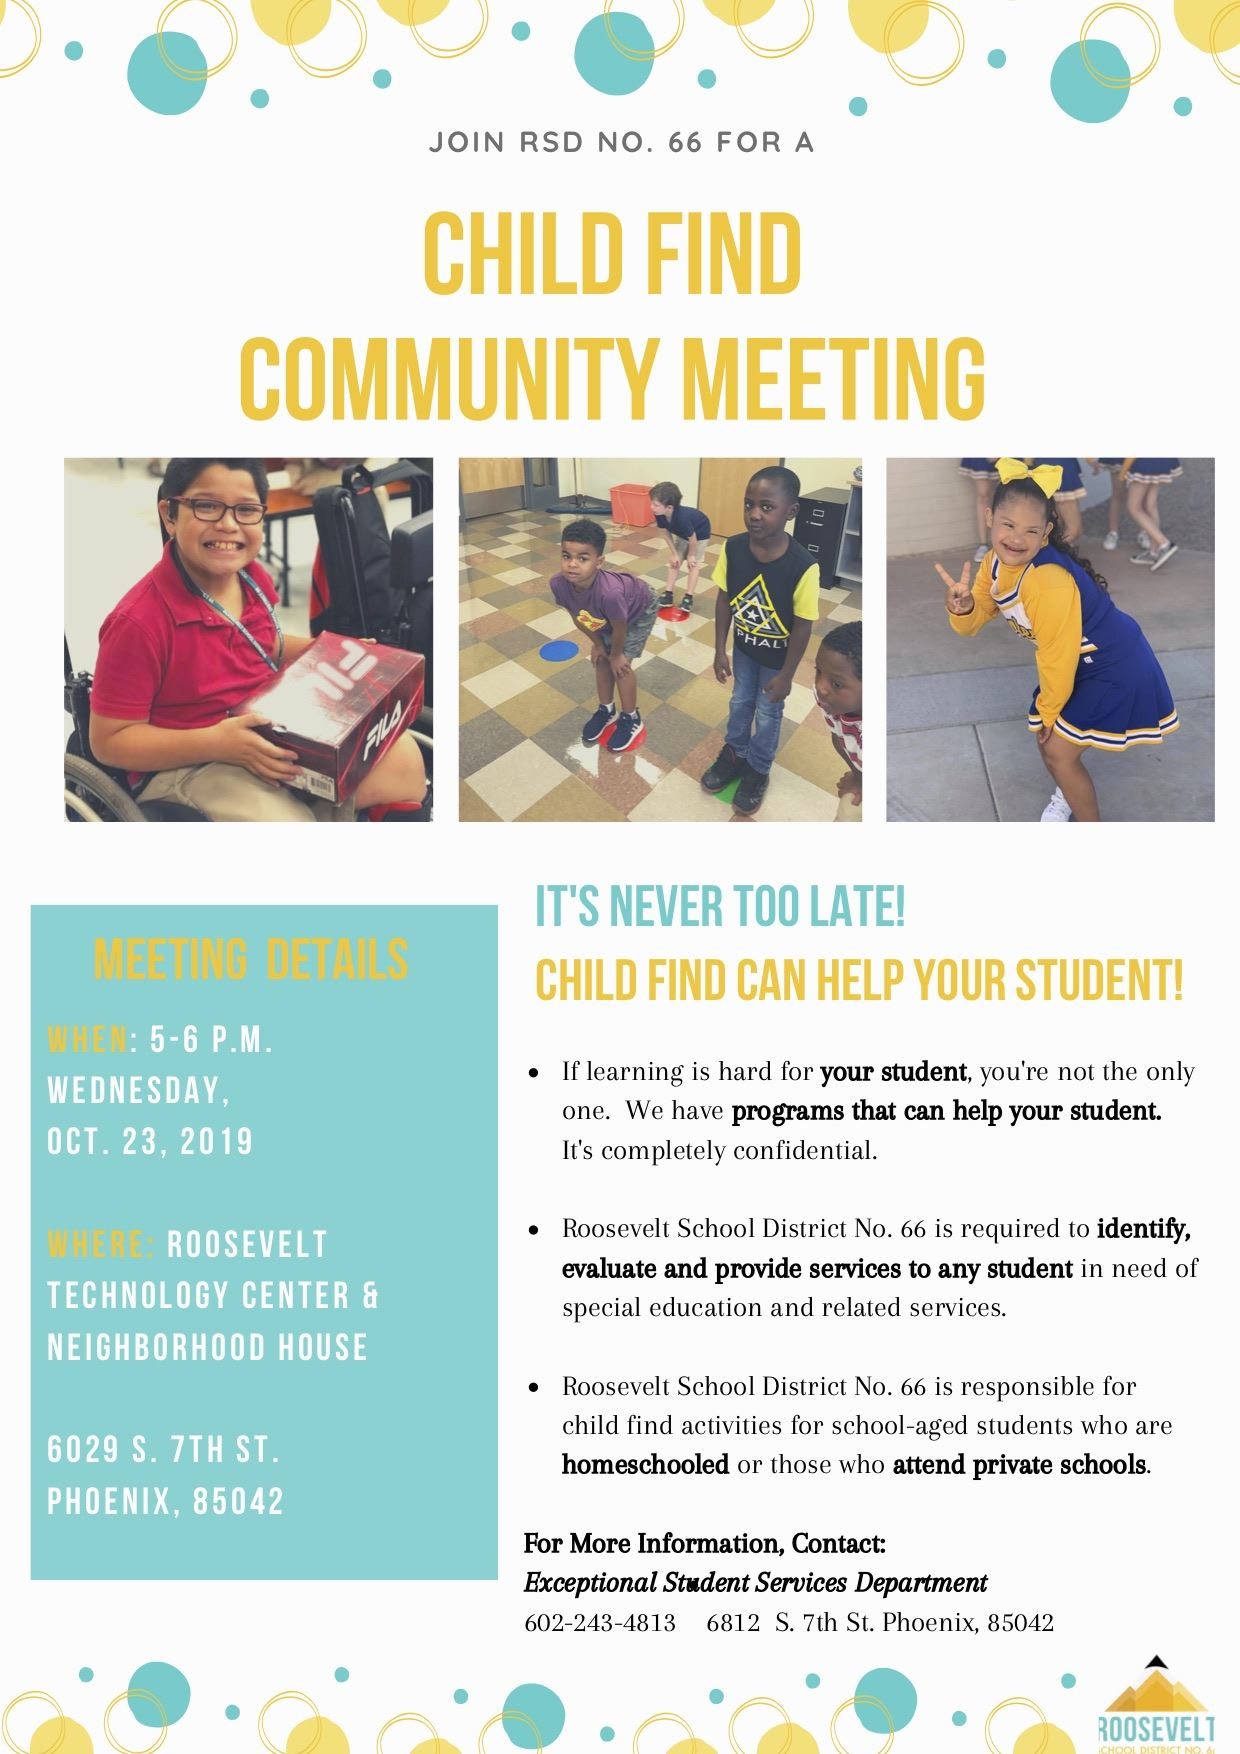 child find community meeting flyer